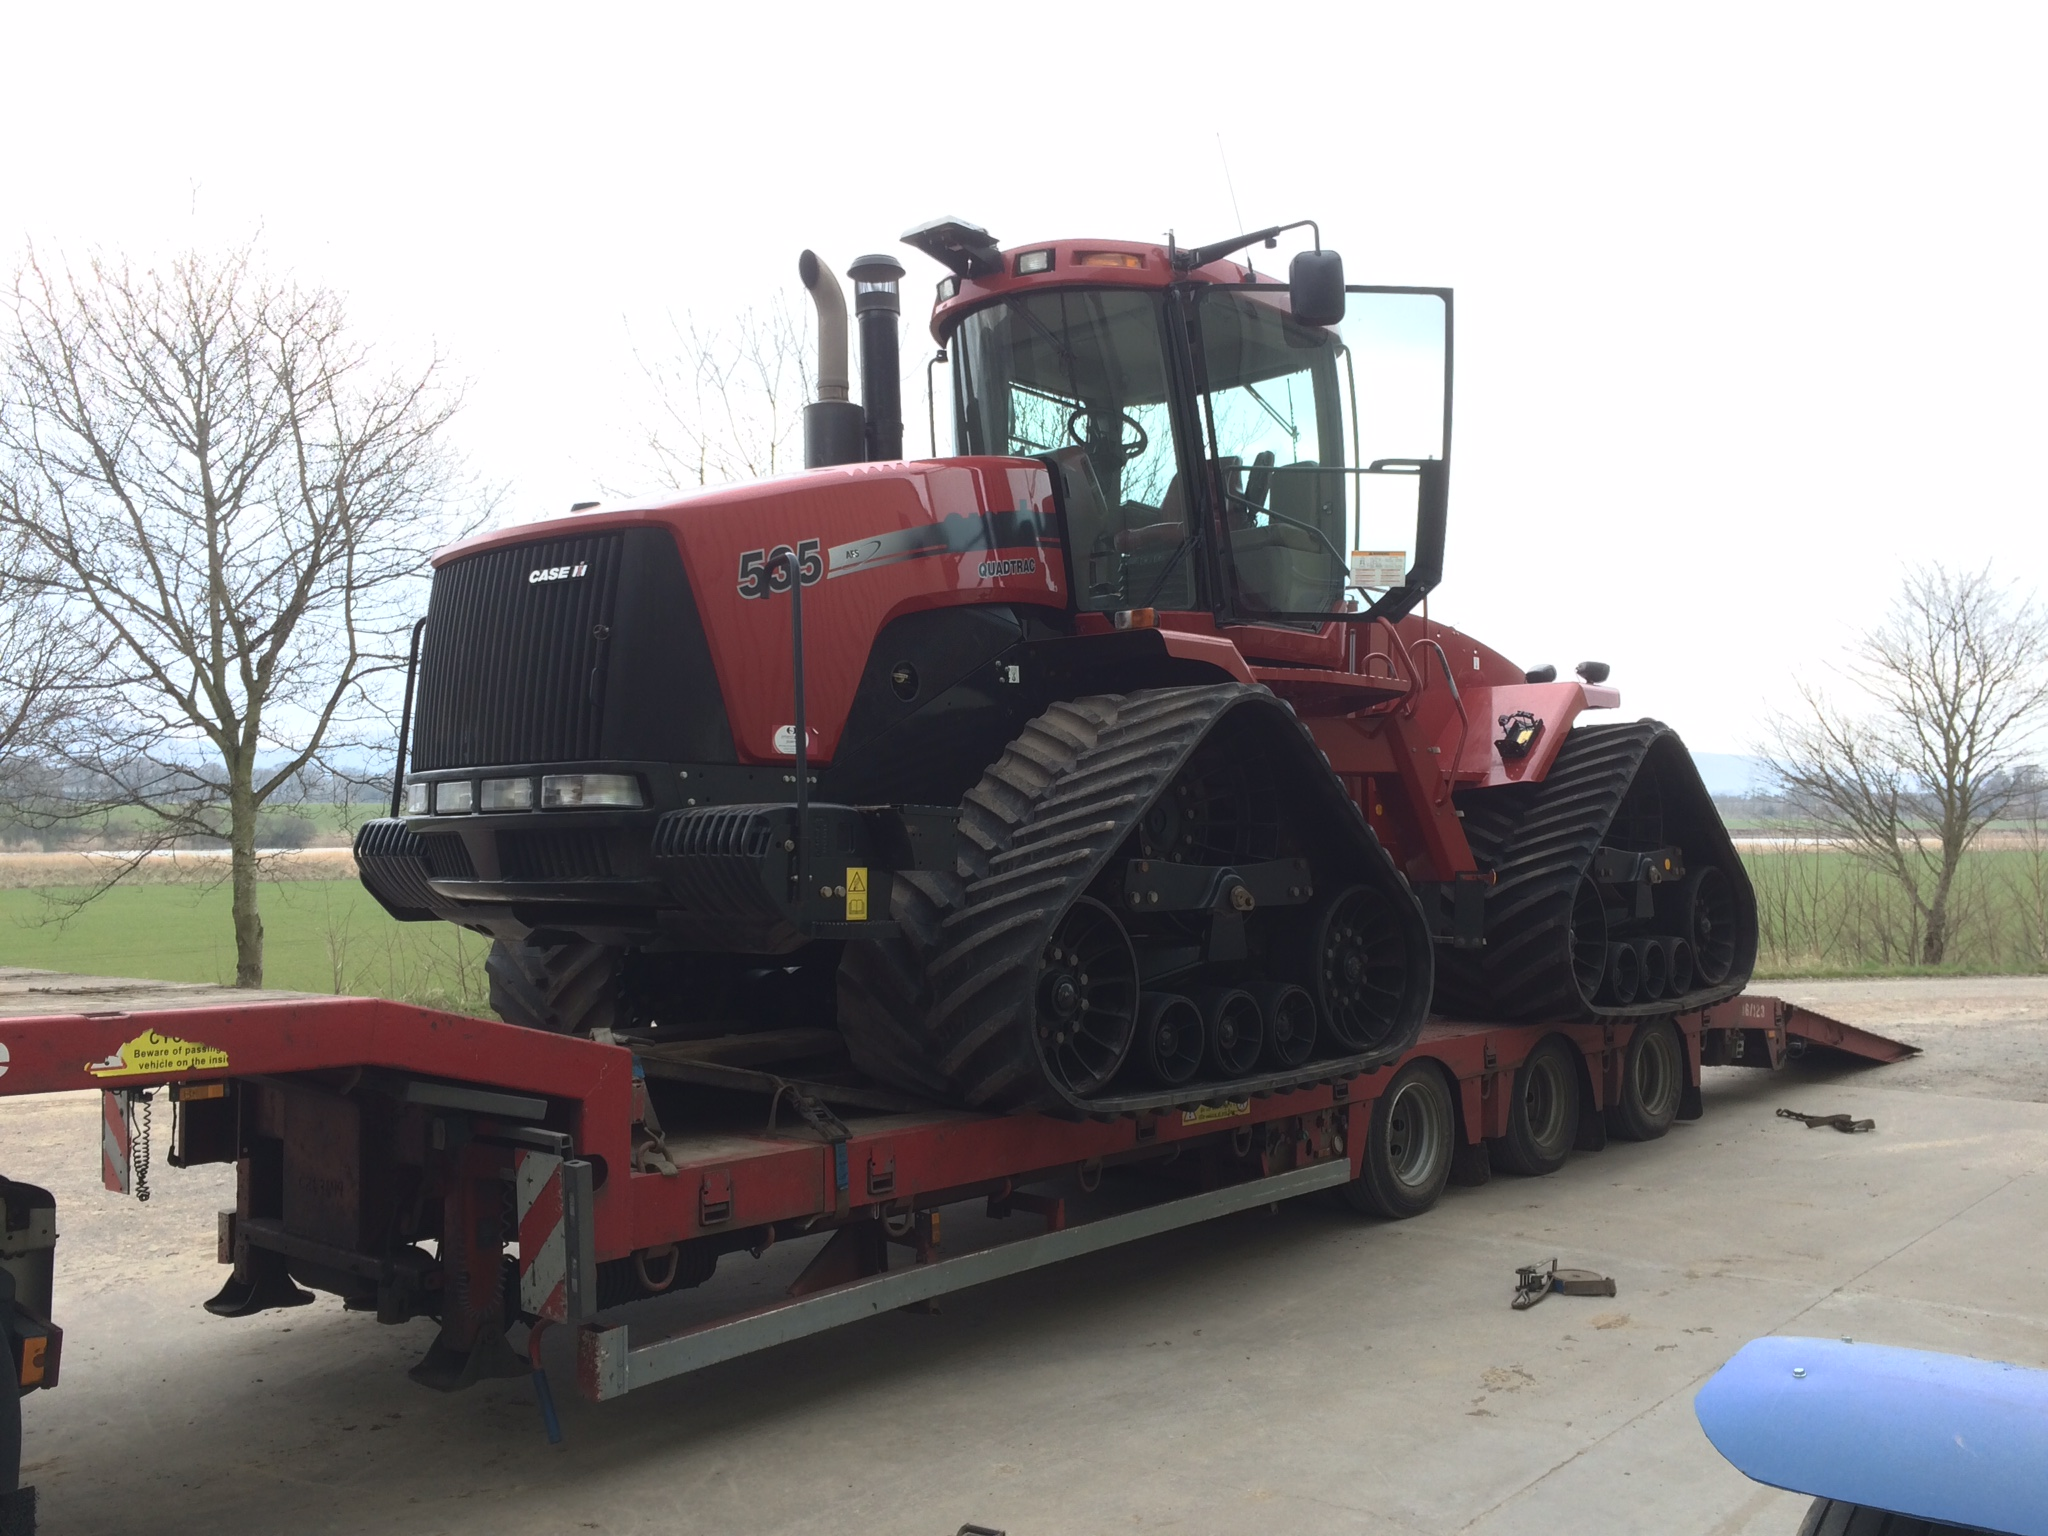 535 Quadtrac arriving for the spring